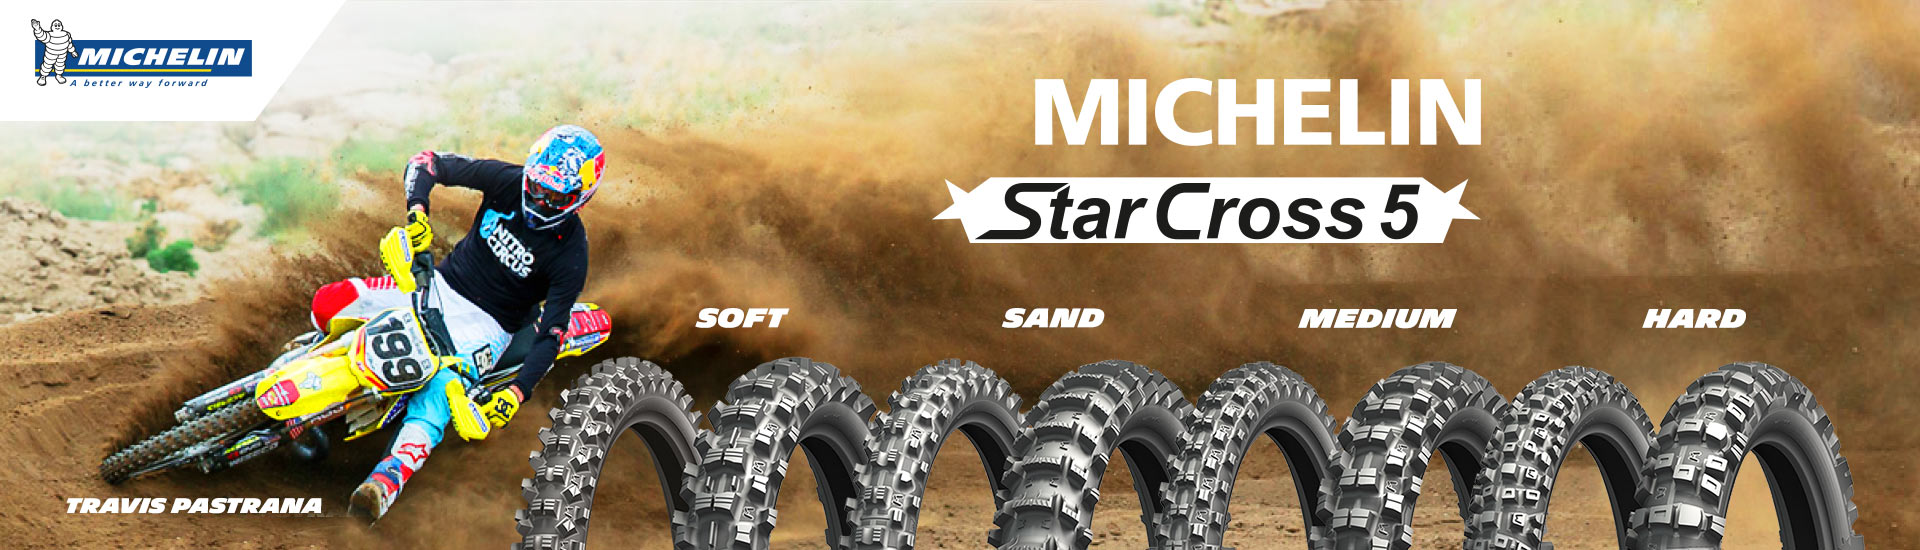 michelin-starcross-5-slider-2